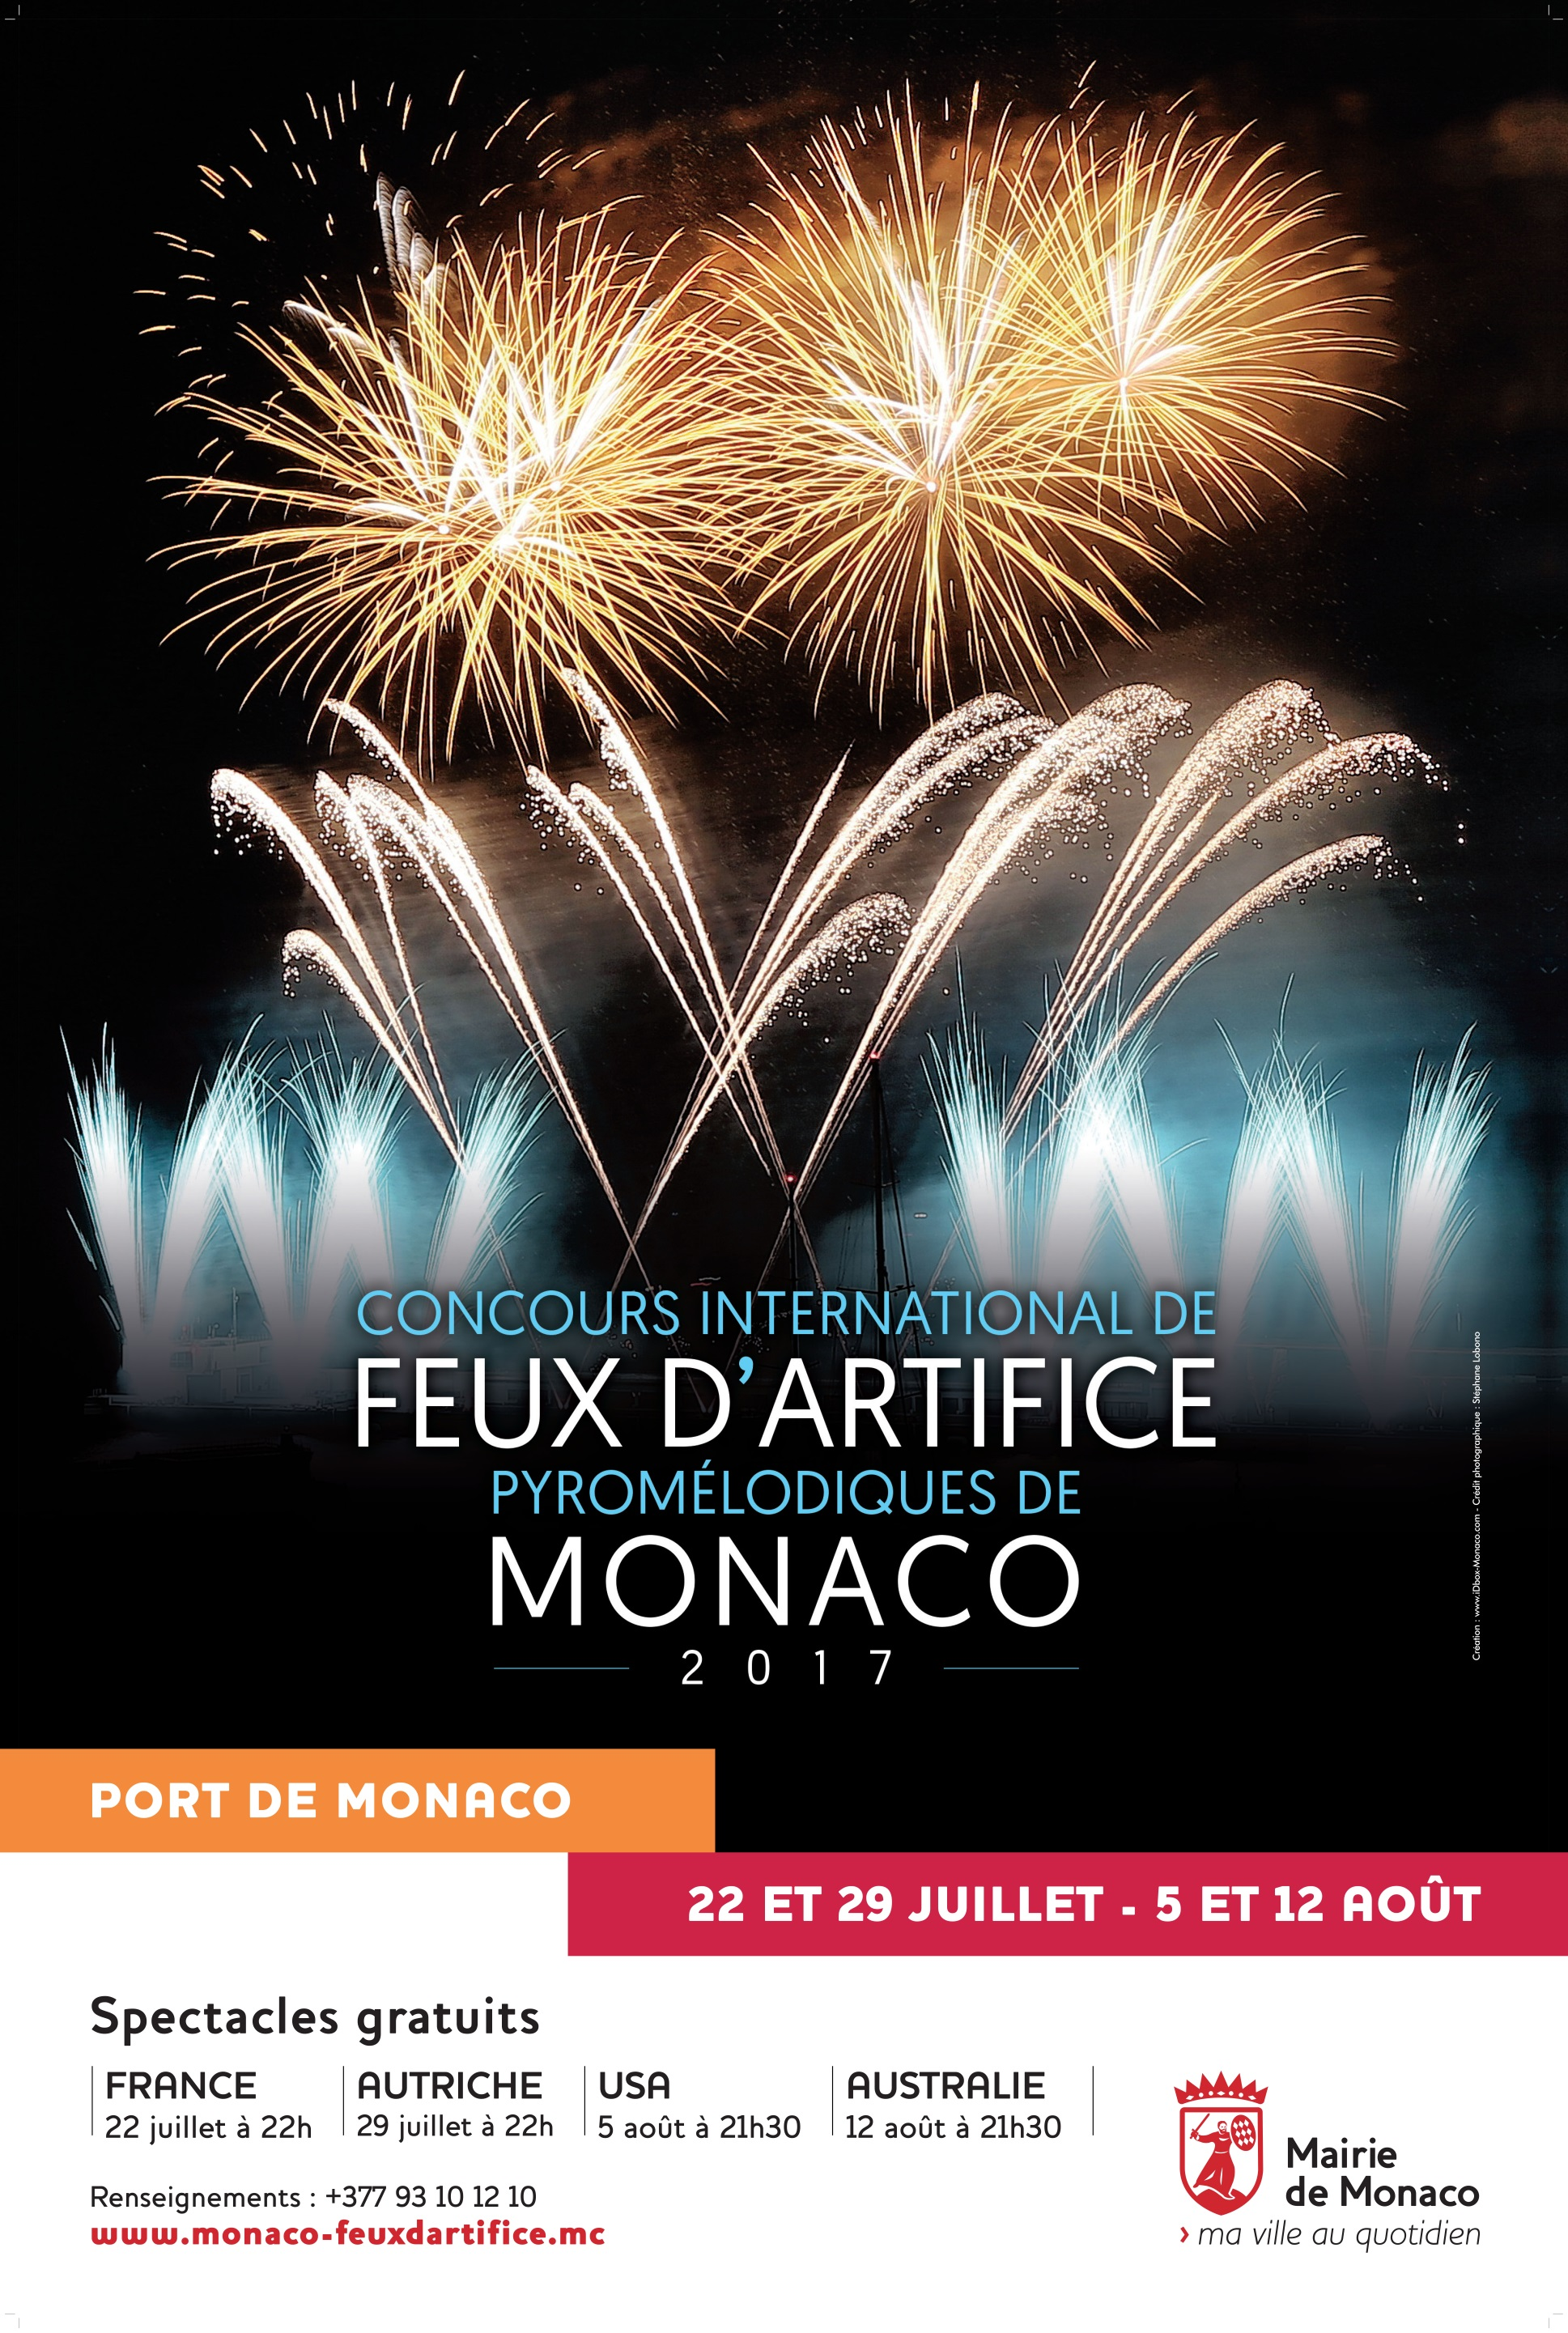 Concours International de Feux dArtifice 2017